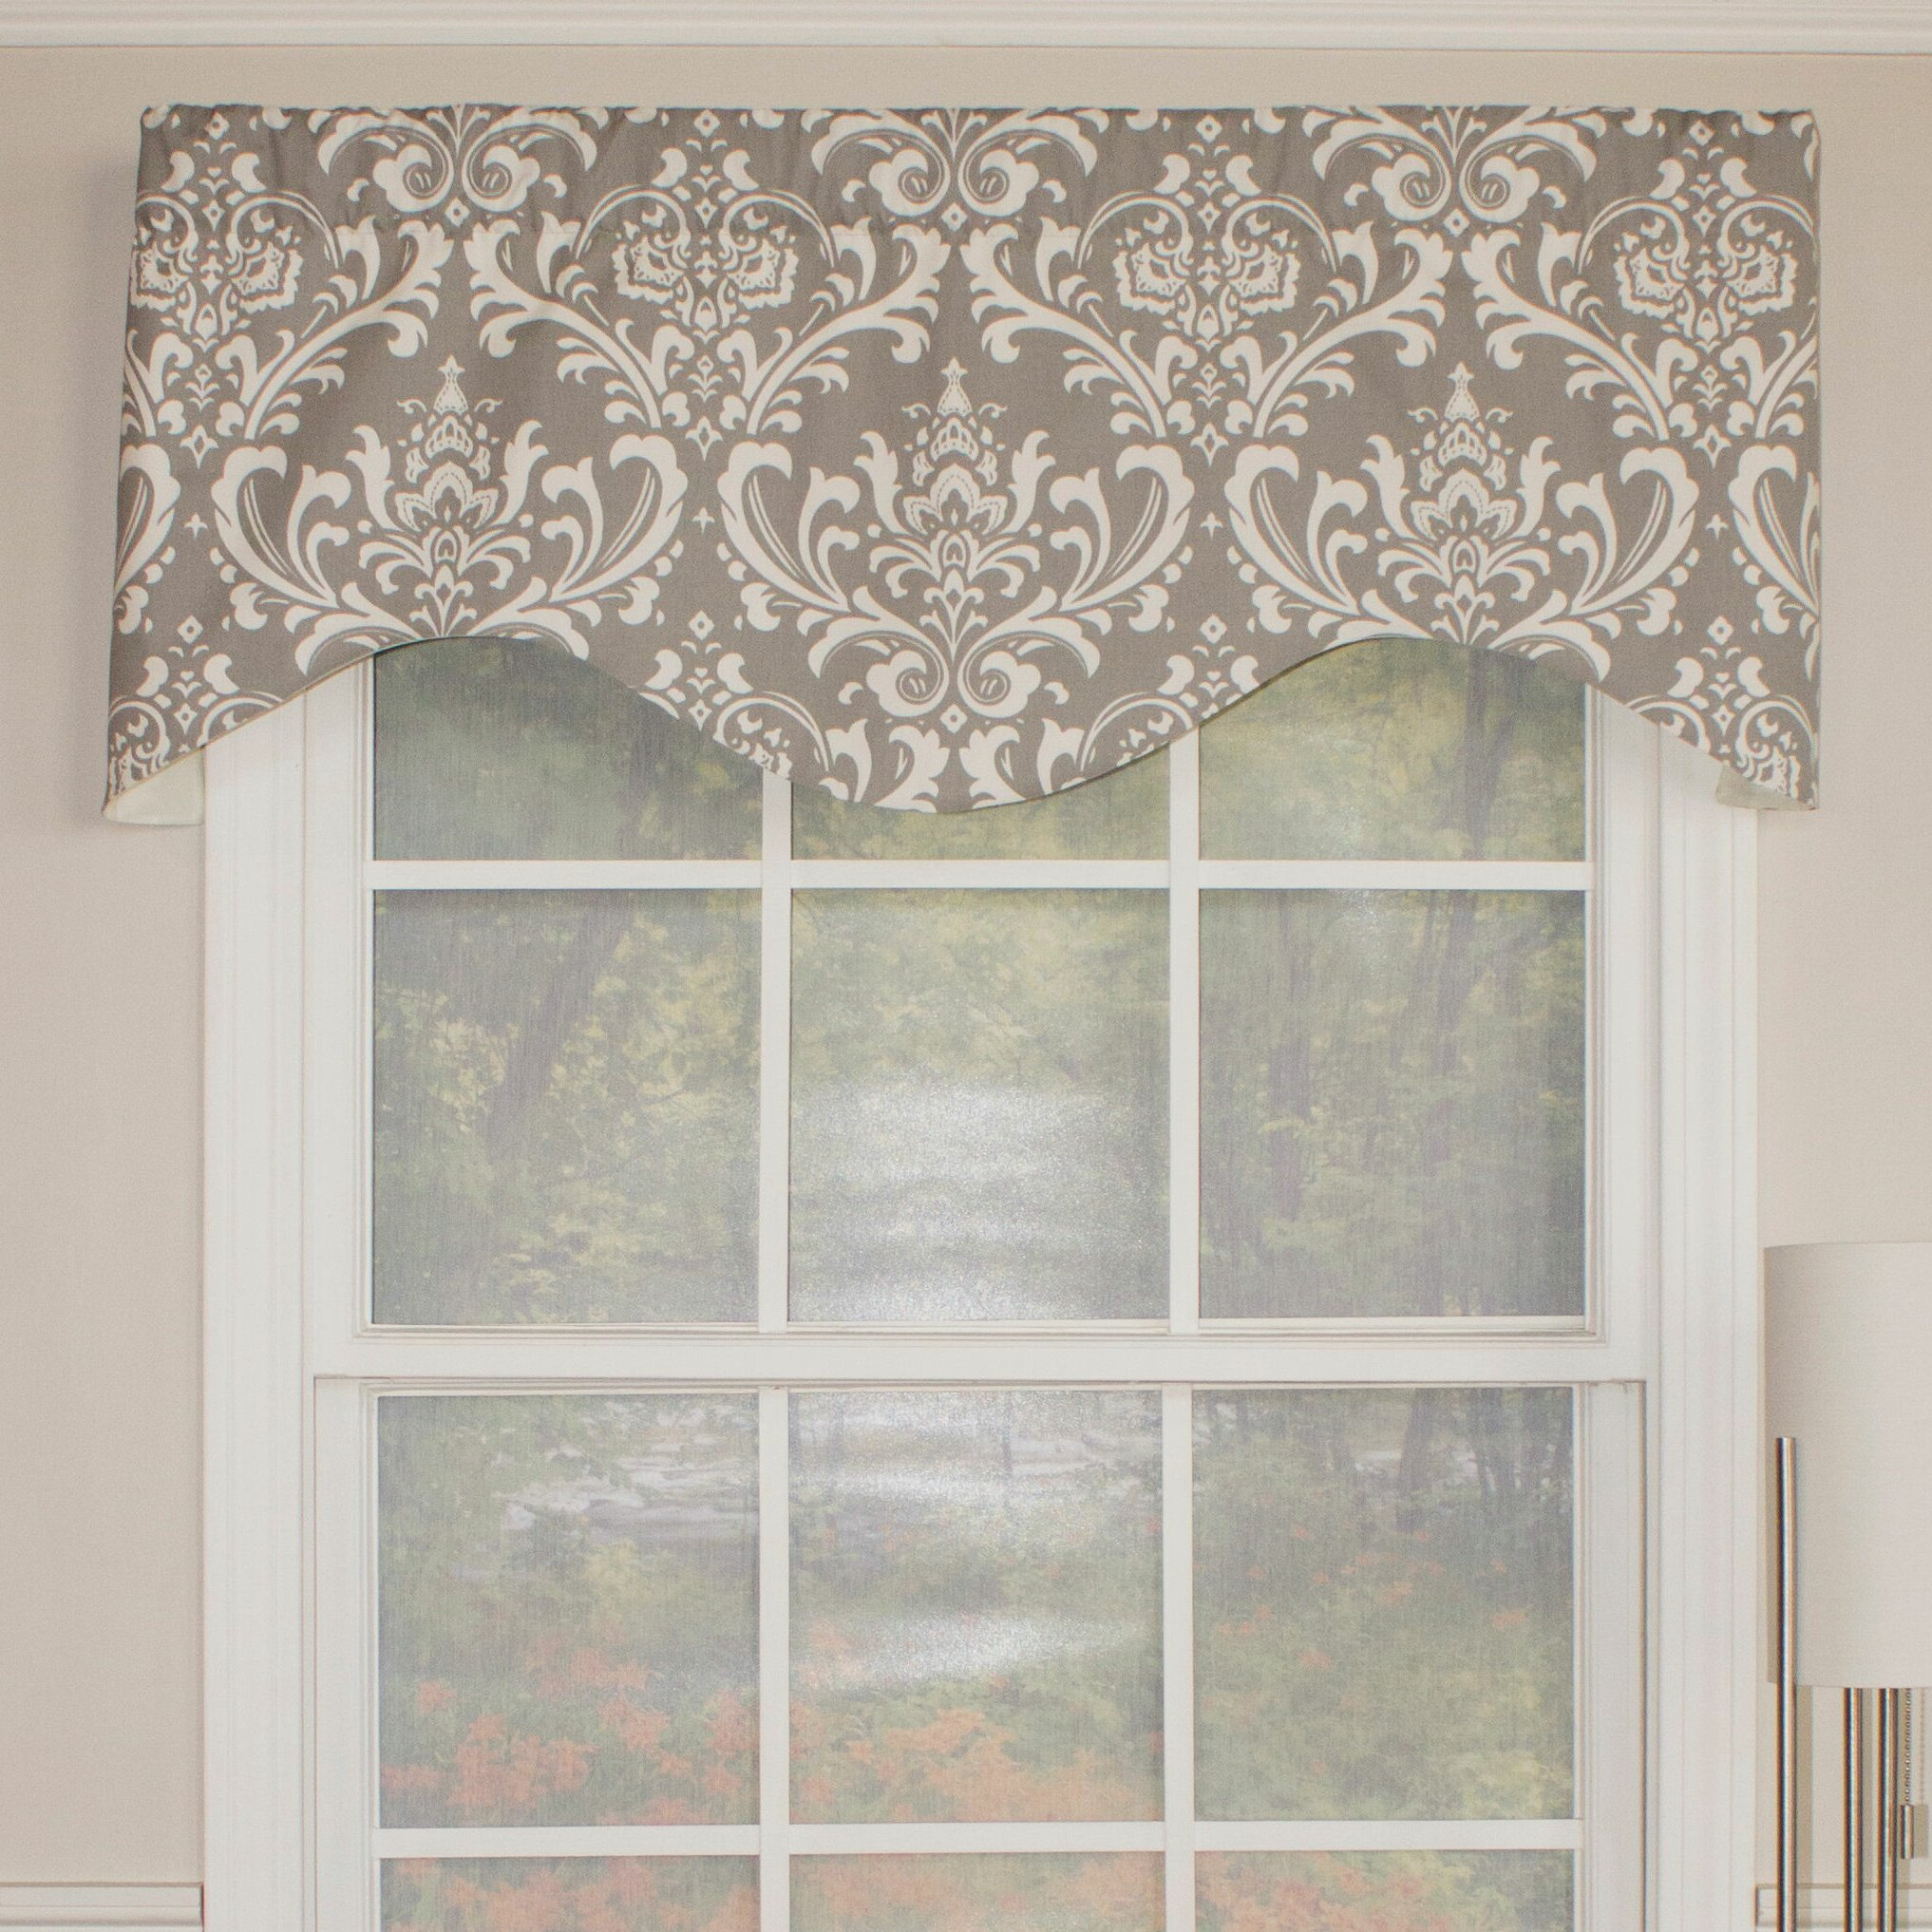 Rlf Home Royal Damask Cornice 50 Curtain Valance Reviews Wayfair